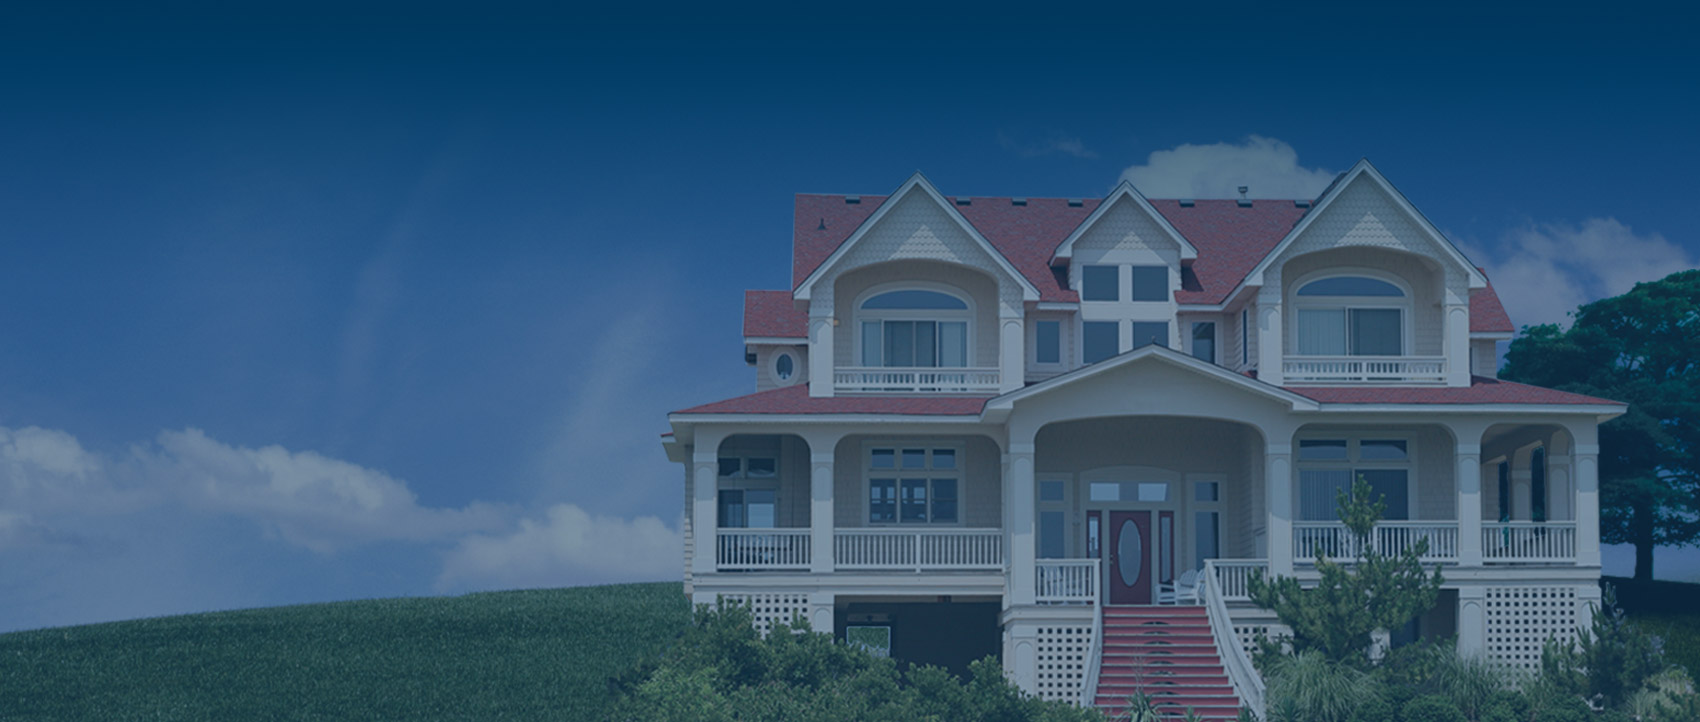 Home Inspection Checklist in New Orleans